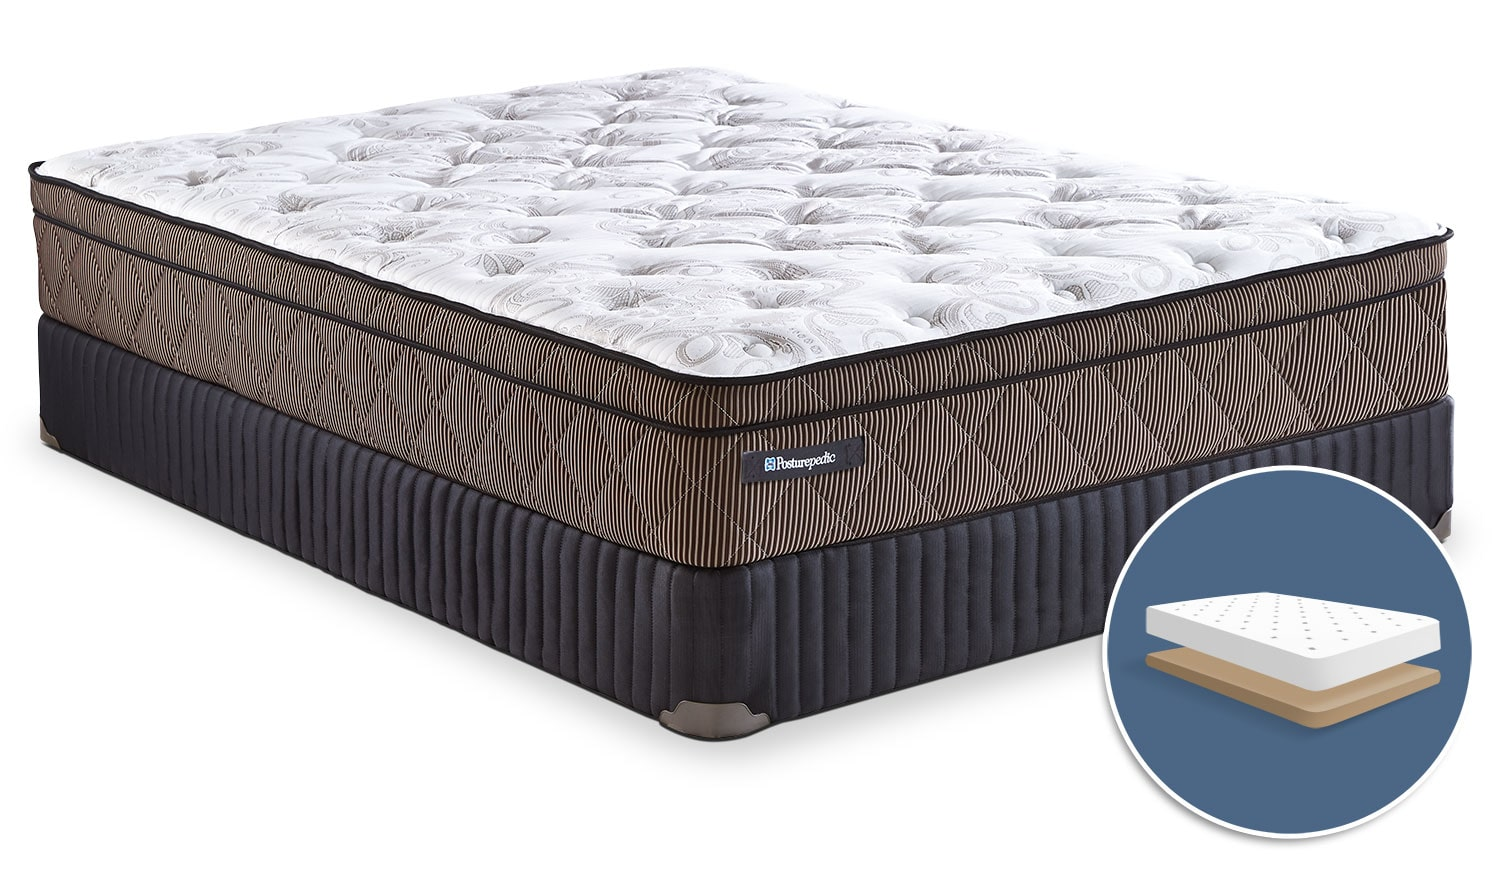 Mattresses and Bedding - Sealy Posturepedic Crown Jewel Riverfront Euro-Top Low-Profile King Mattress Set